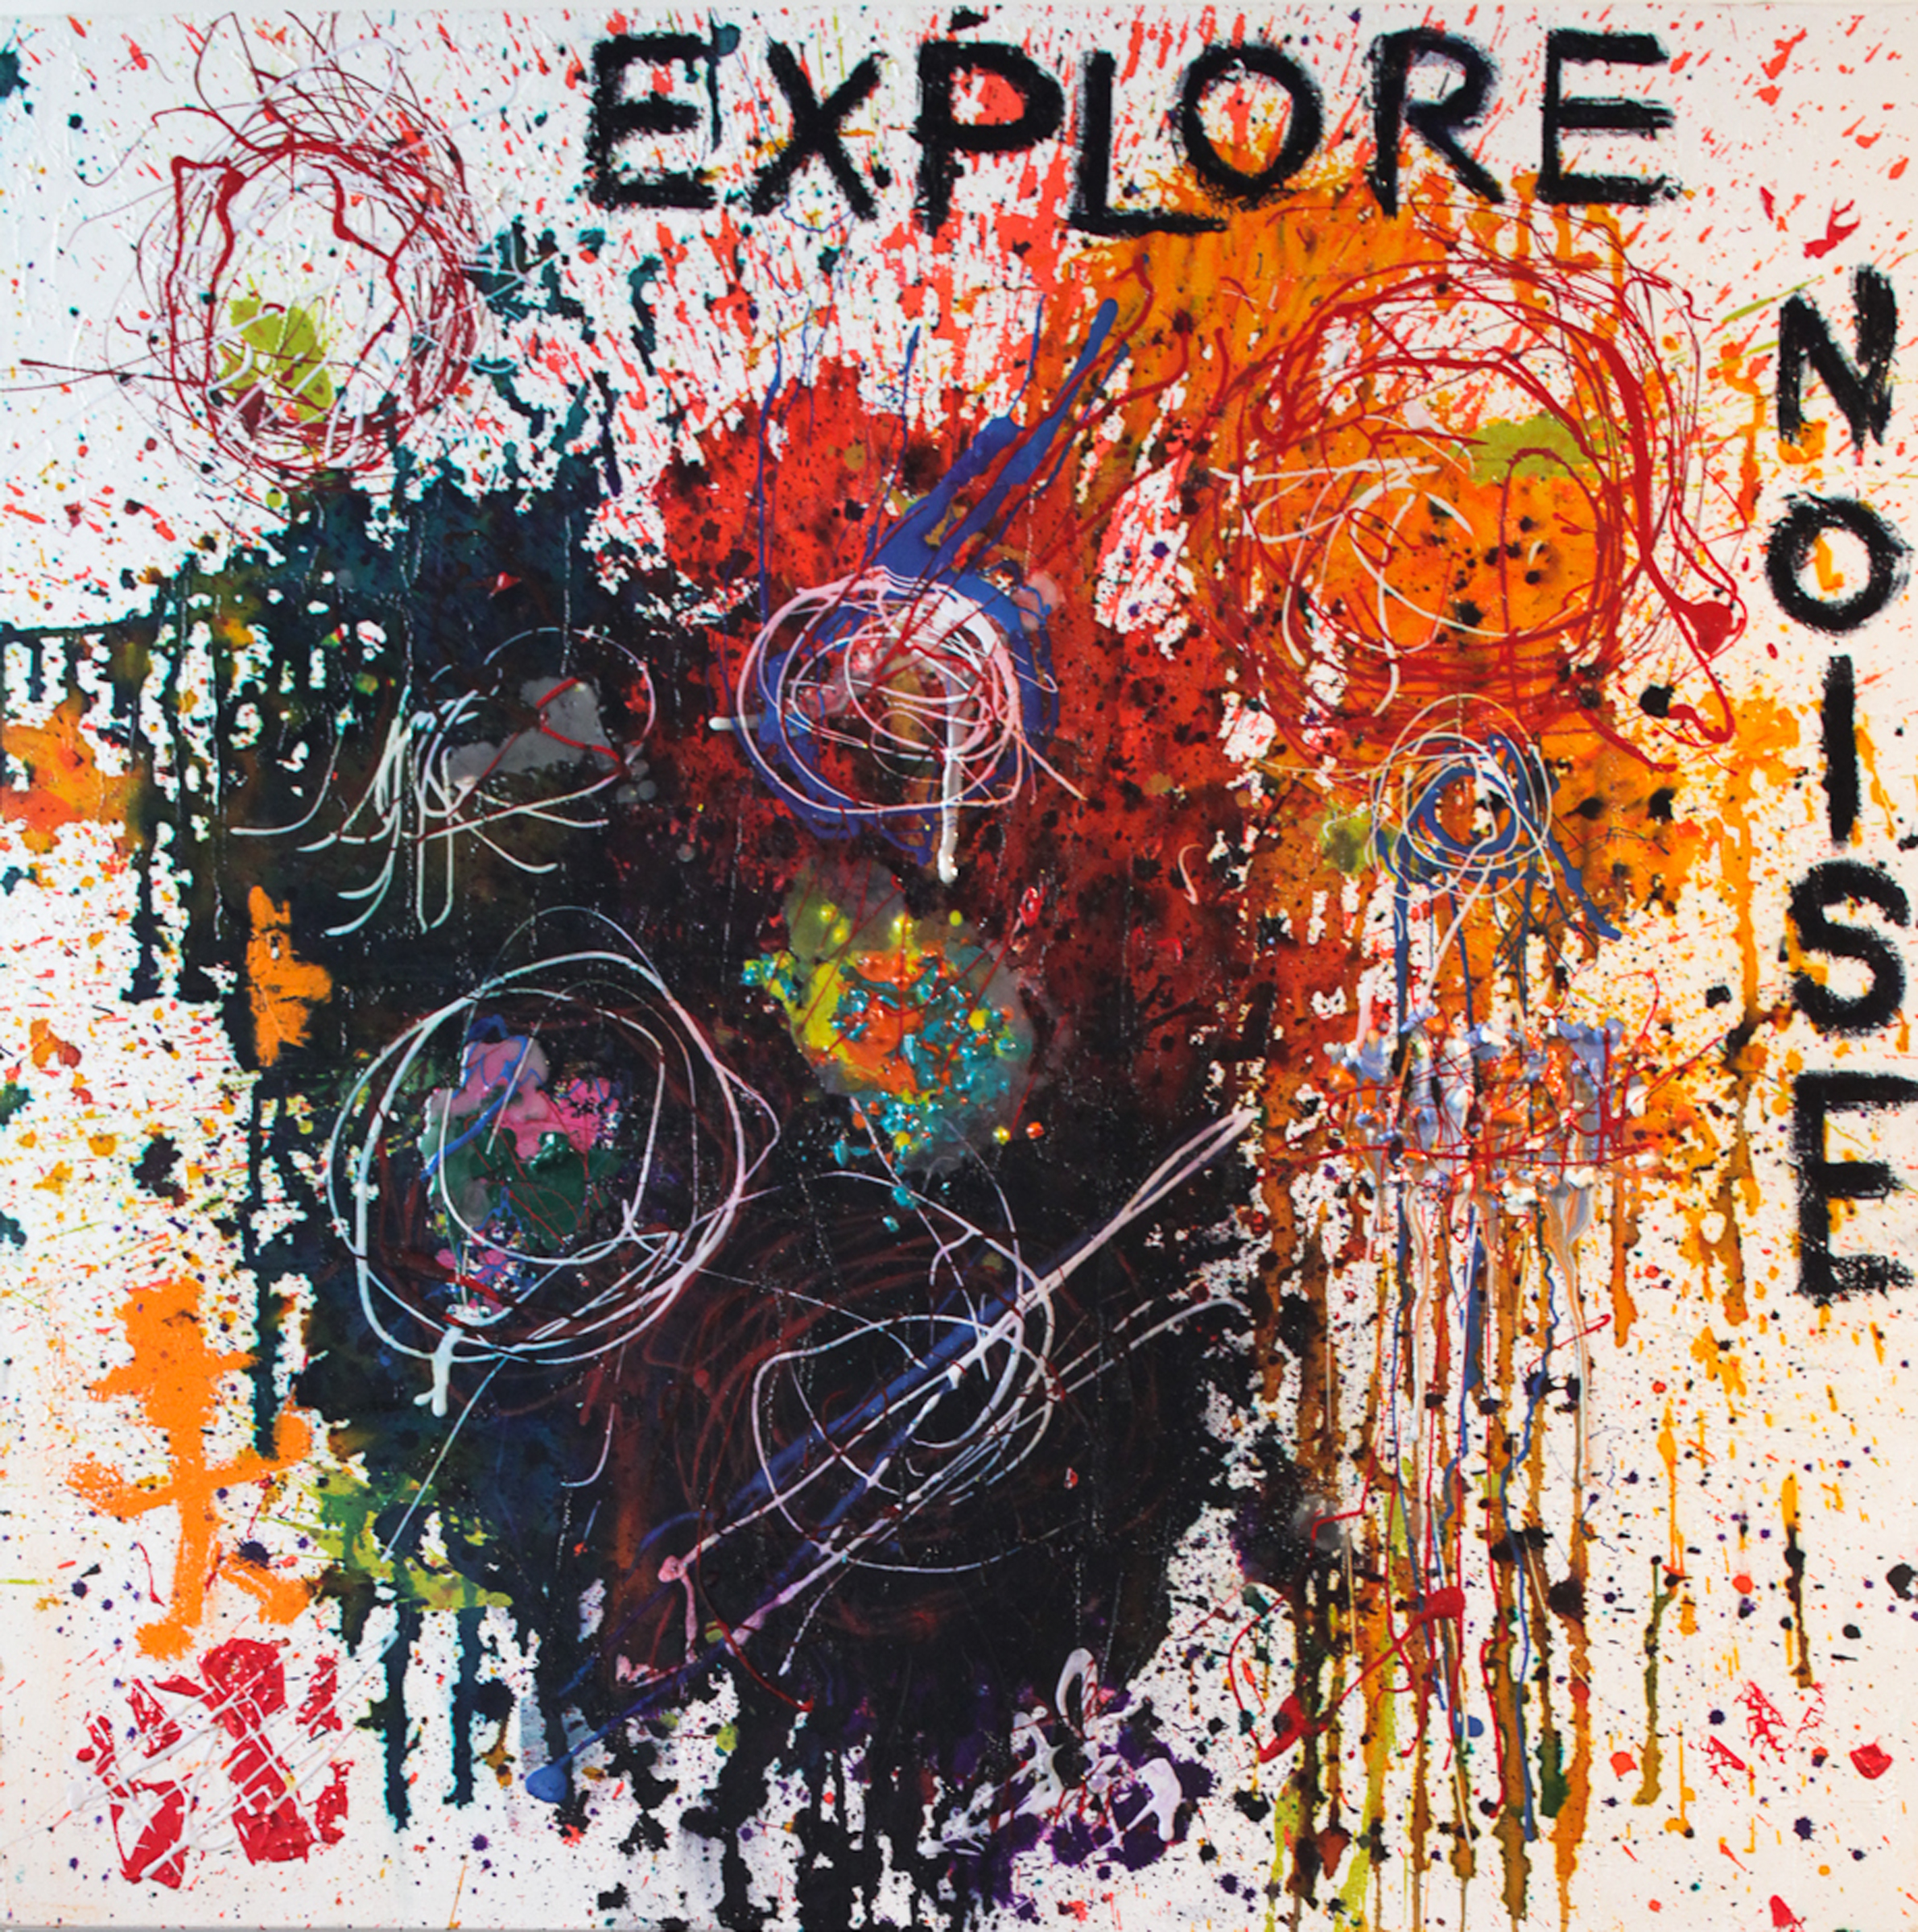 Bernie Taupin | Explore Noise | Acrylic, Wax, Oil Stick, and Fabric Paint on Canvas | 40 x 40